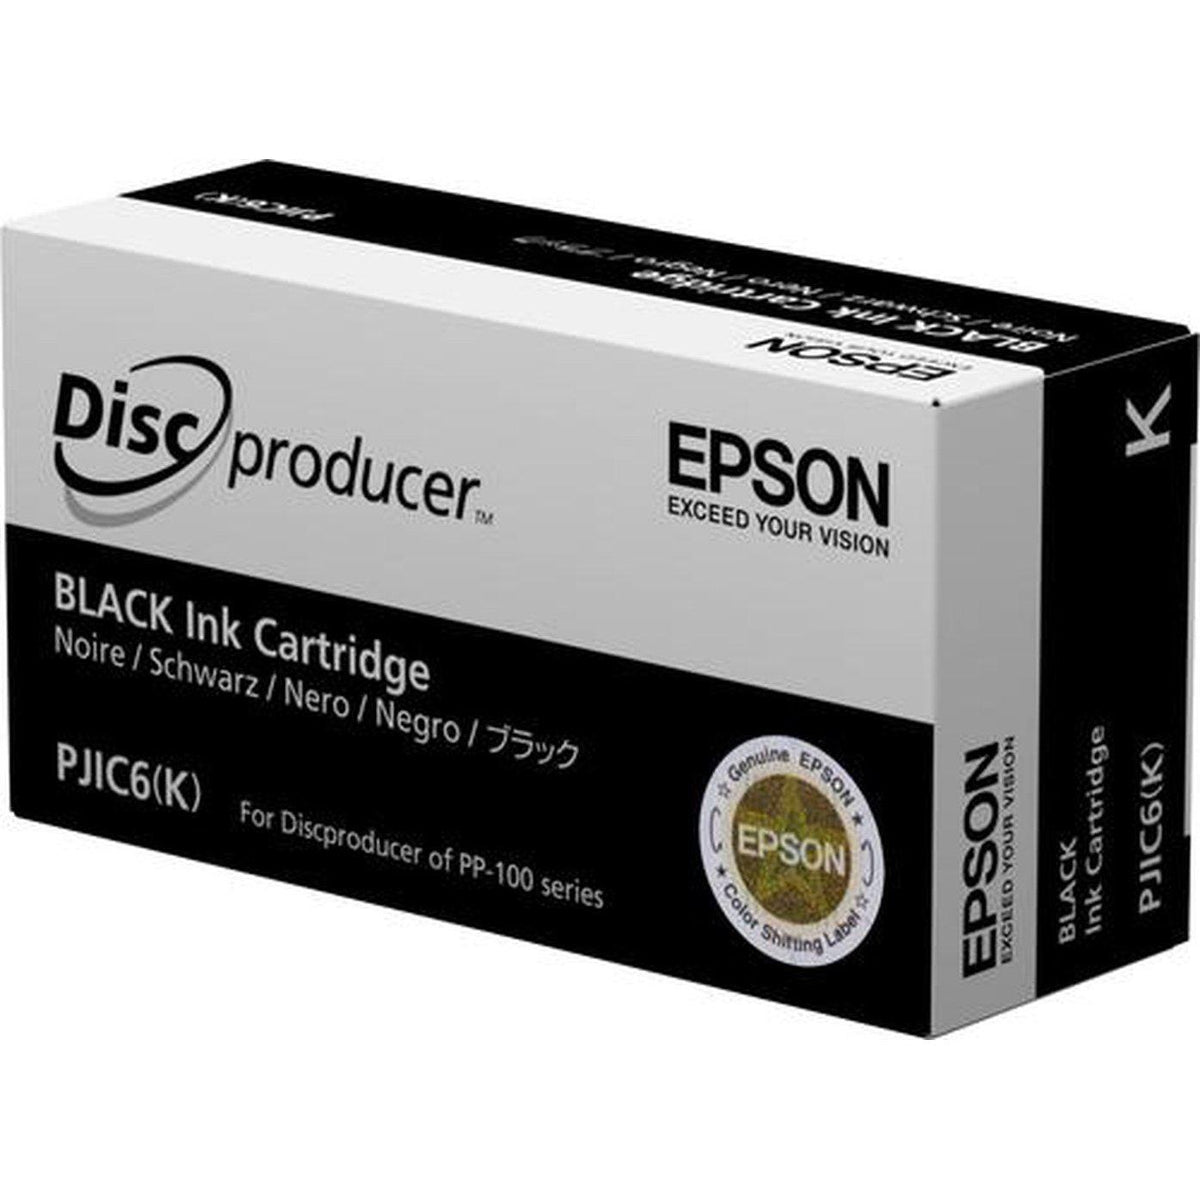 Epson Discproducer Ink Cartridge PJICj, Black | C13S020452 Consumable Epson